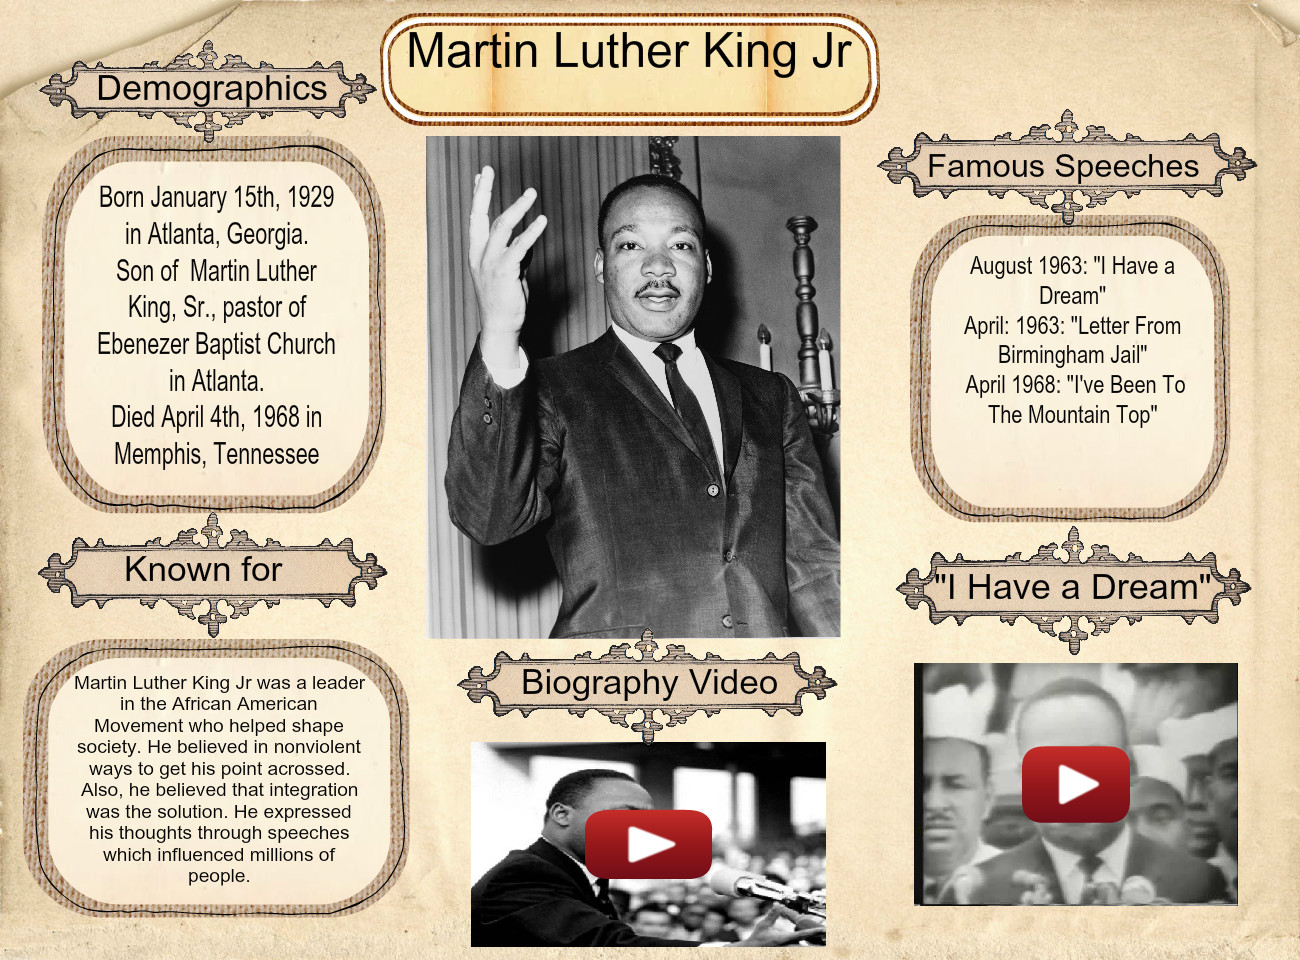 [2015] Jaciely Cartagena: Martin Luther King Jr